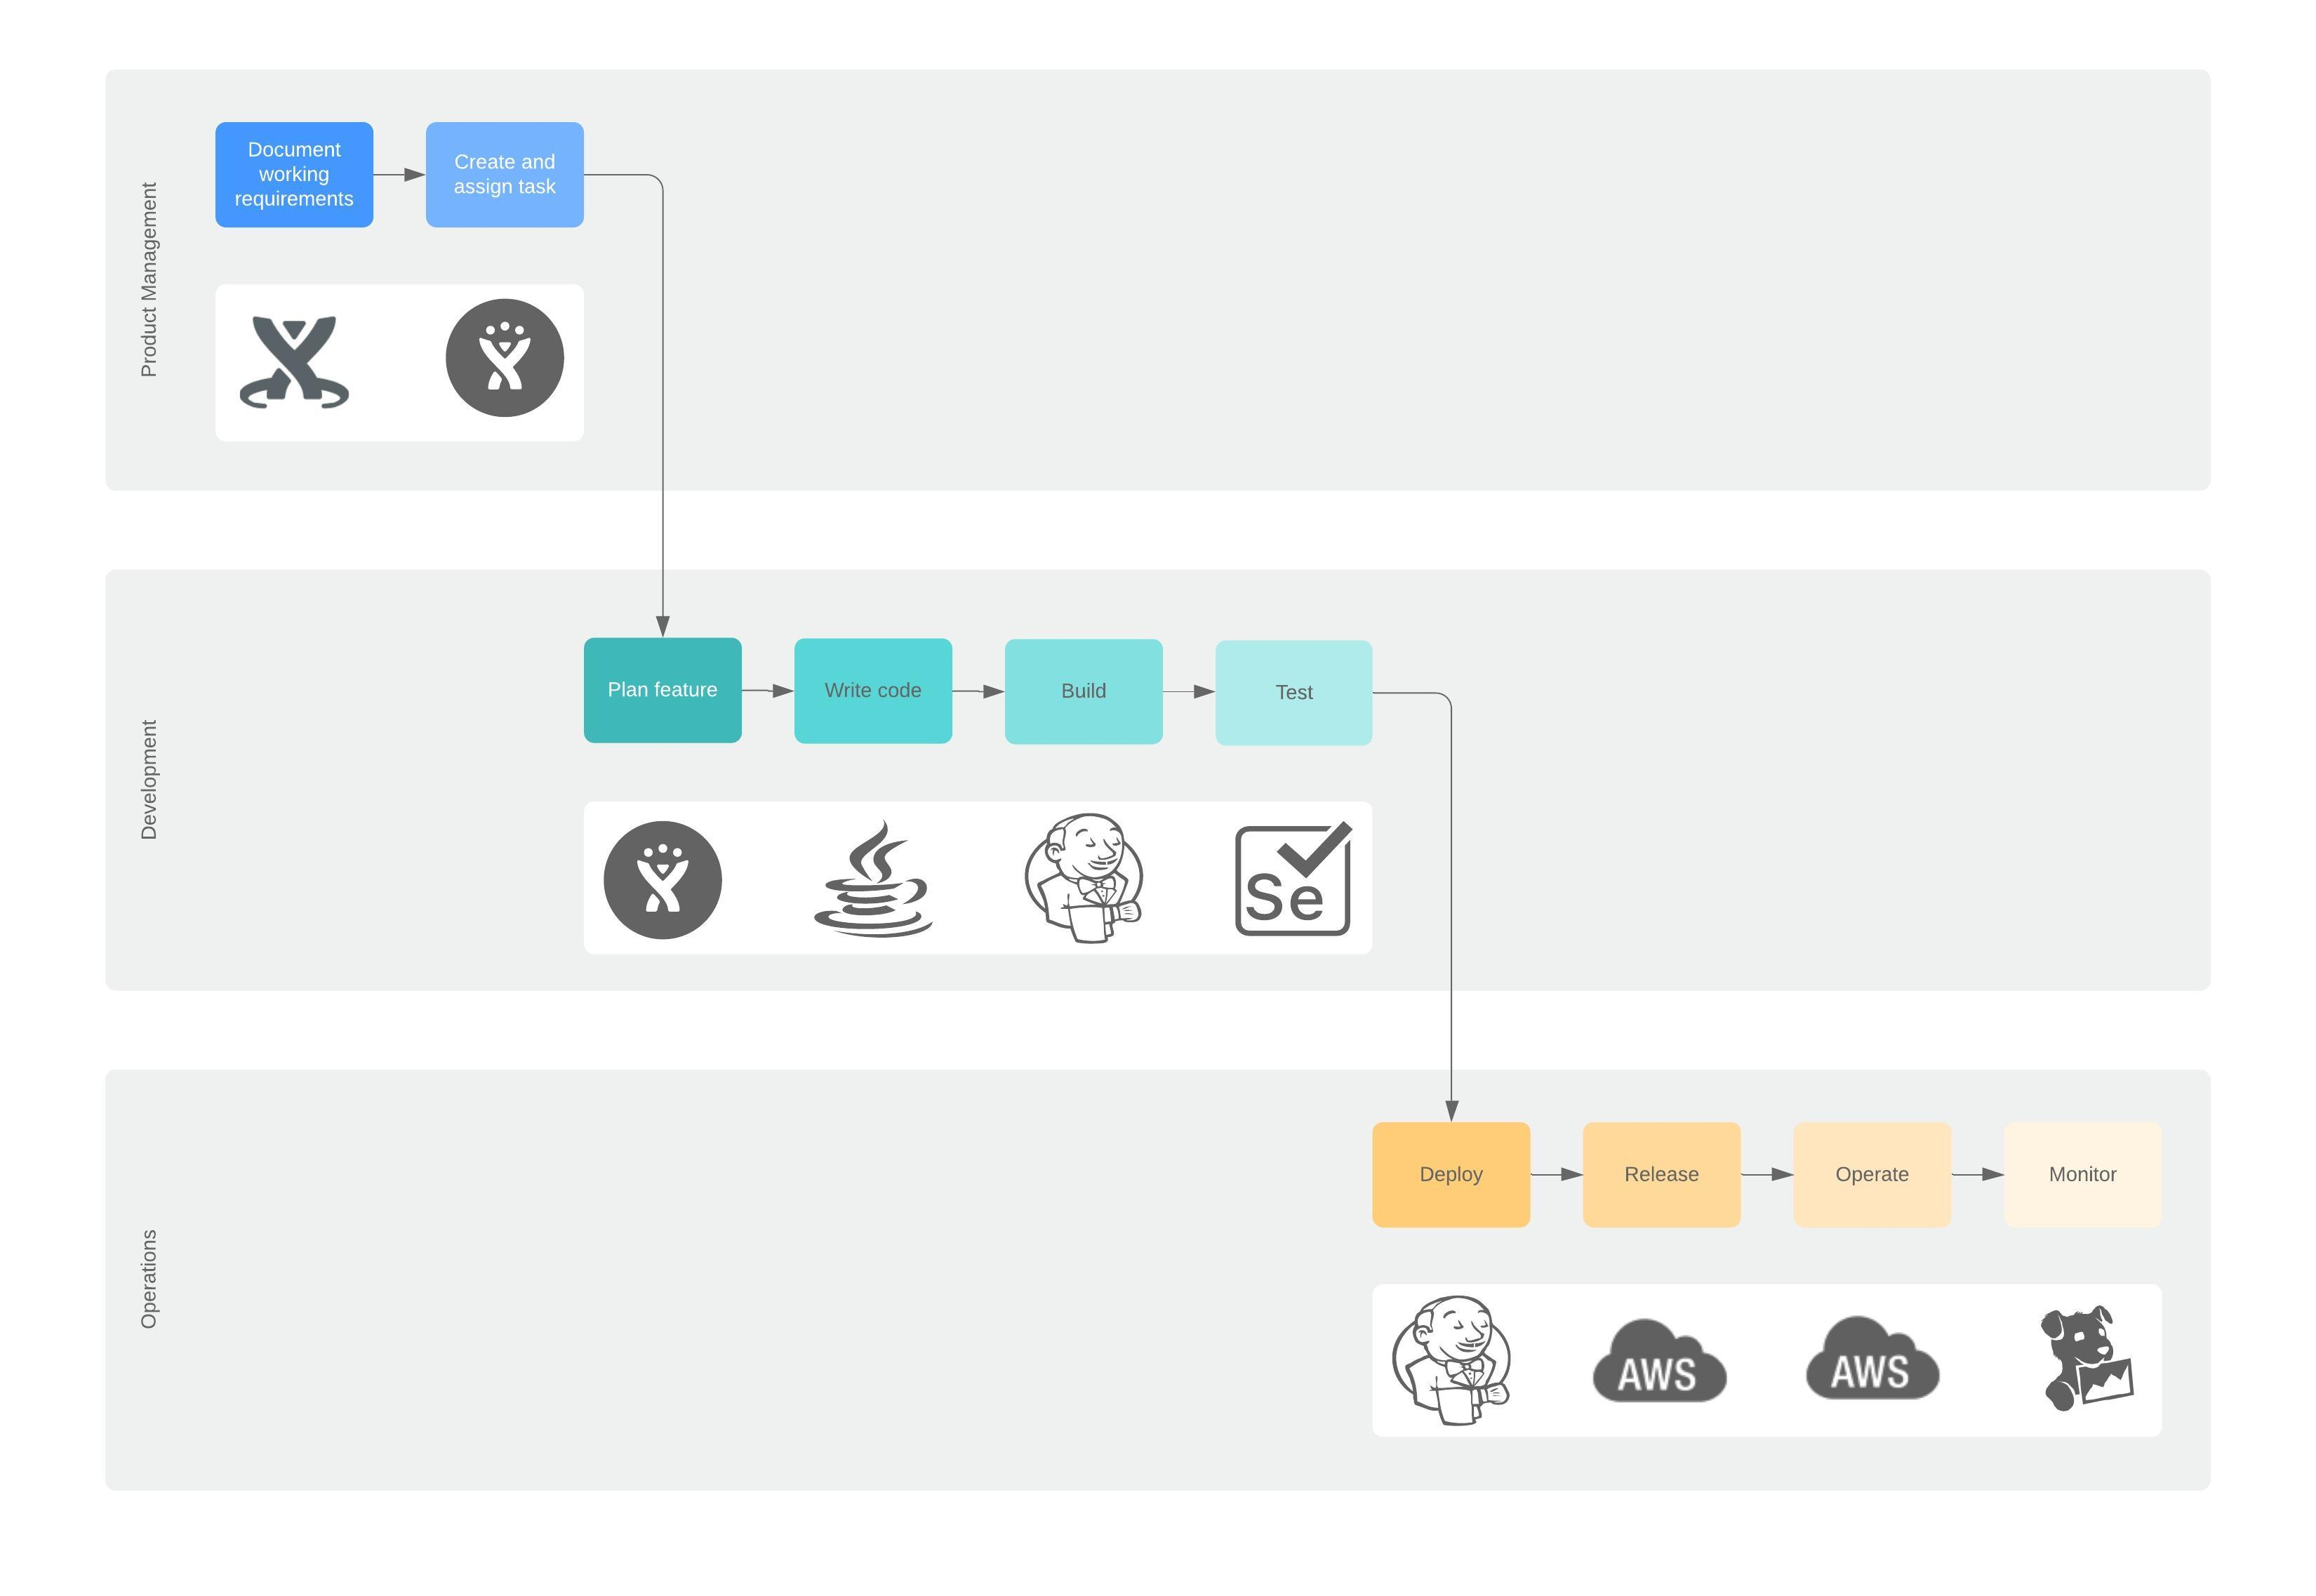 DevOps Toolchain and Process Flow